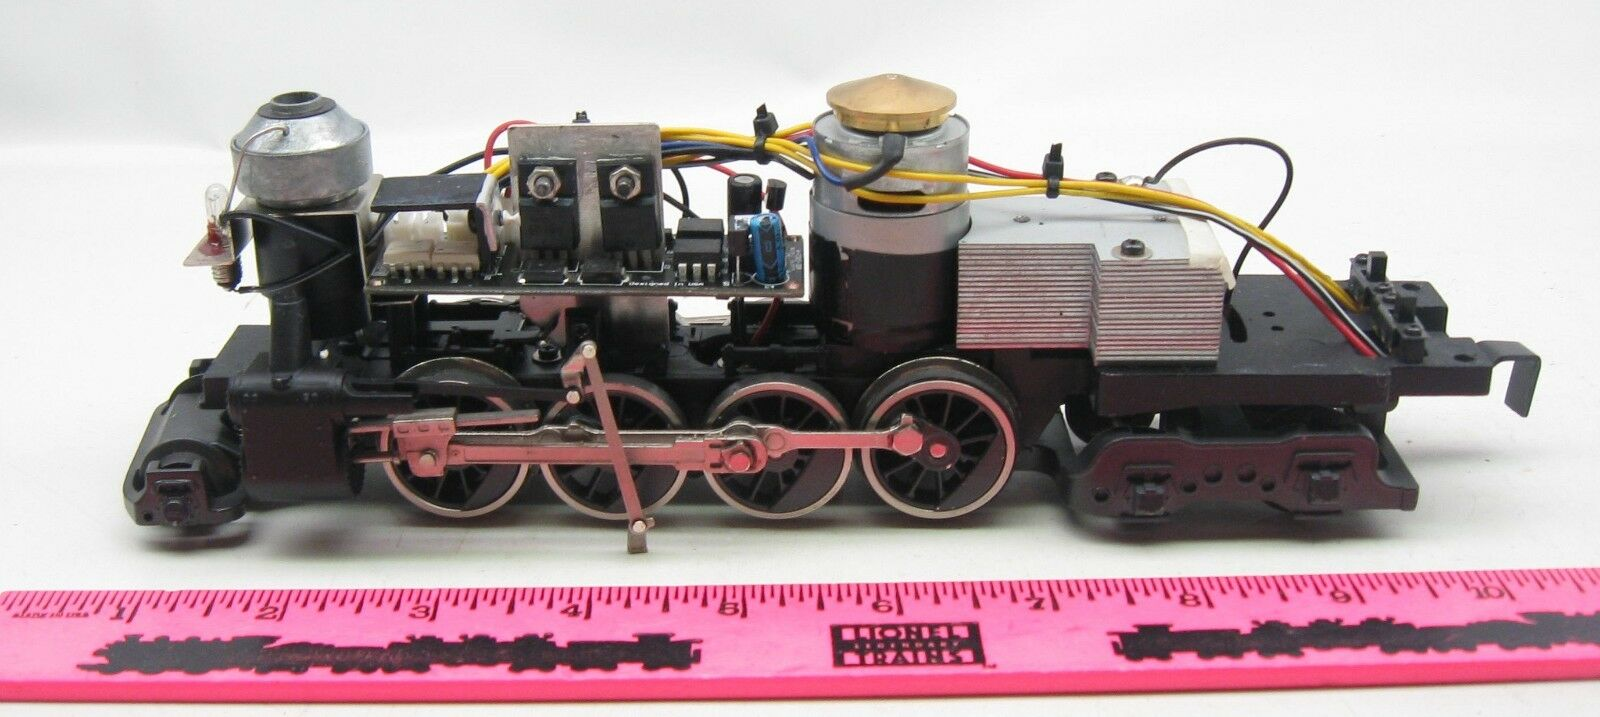 Lionel 2-8-4 Steam Locomotive motor frame assembly with smoke